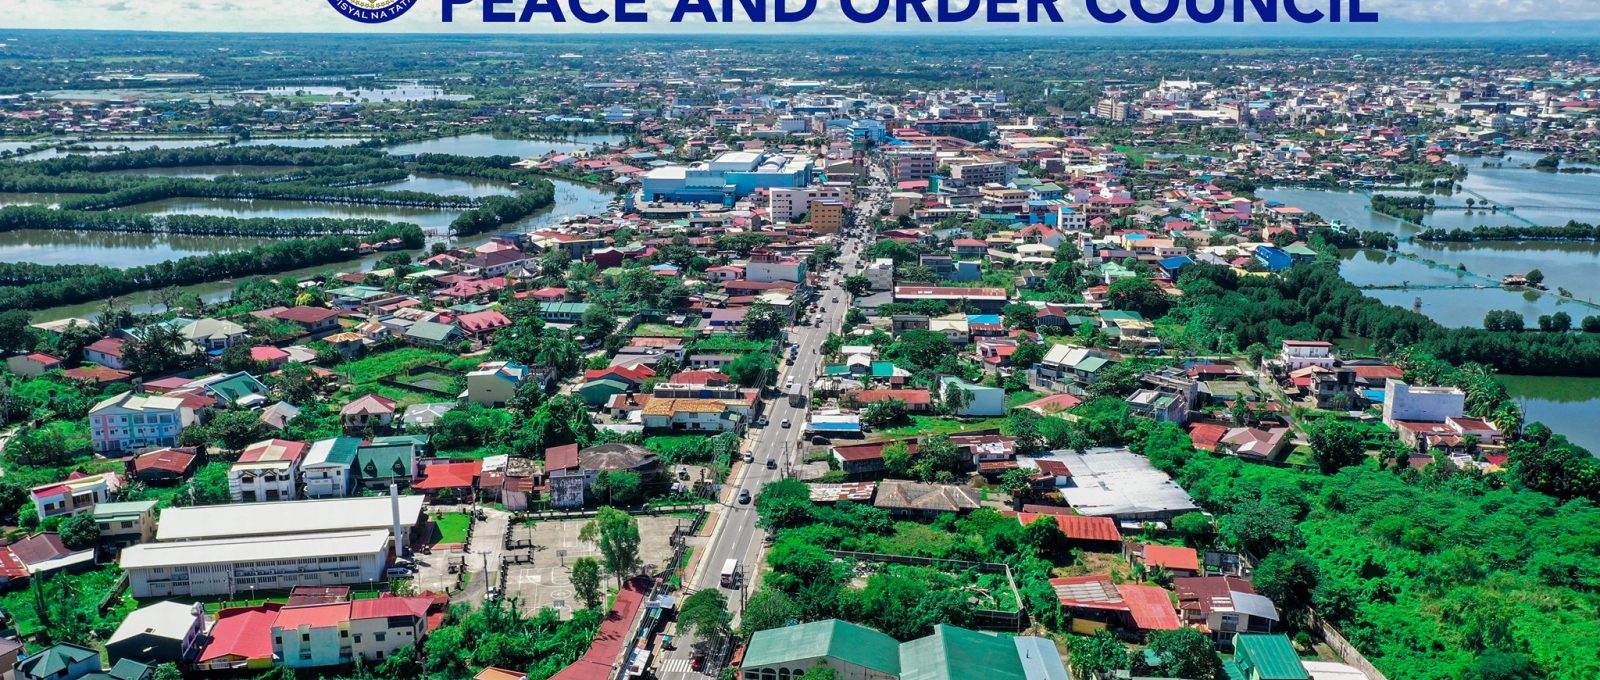 Mayor Lim reconstitutes city's peace and order council